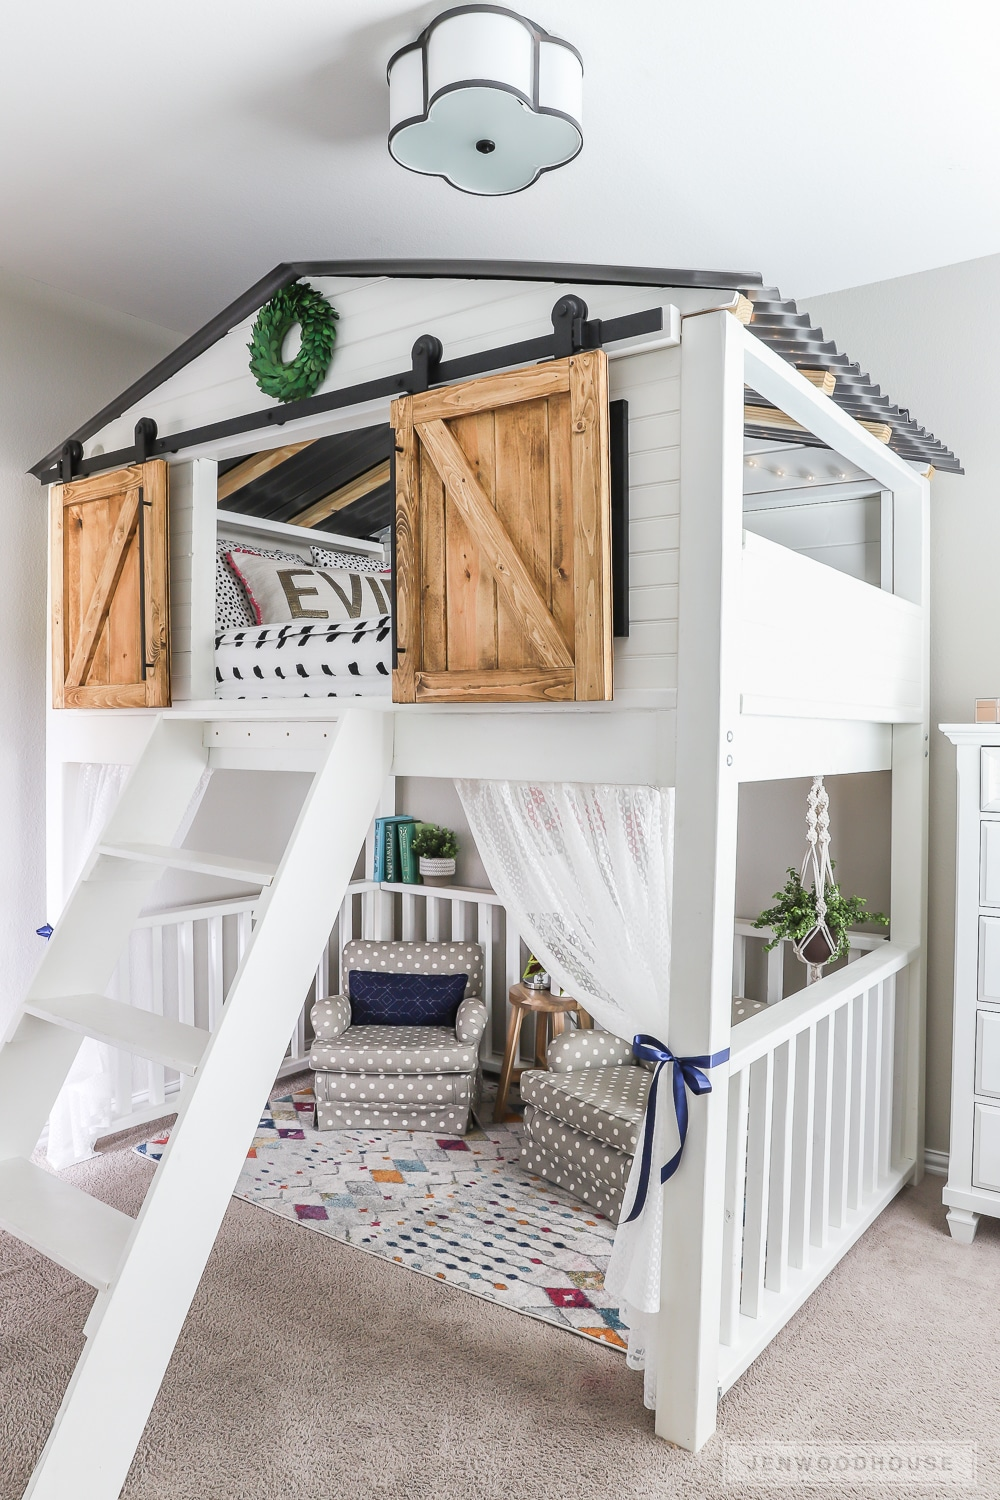 Advantages Of Utilizing Loft Beds For Kids Plans How to build a DIY sliding barn door loft bed